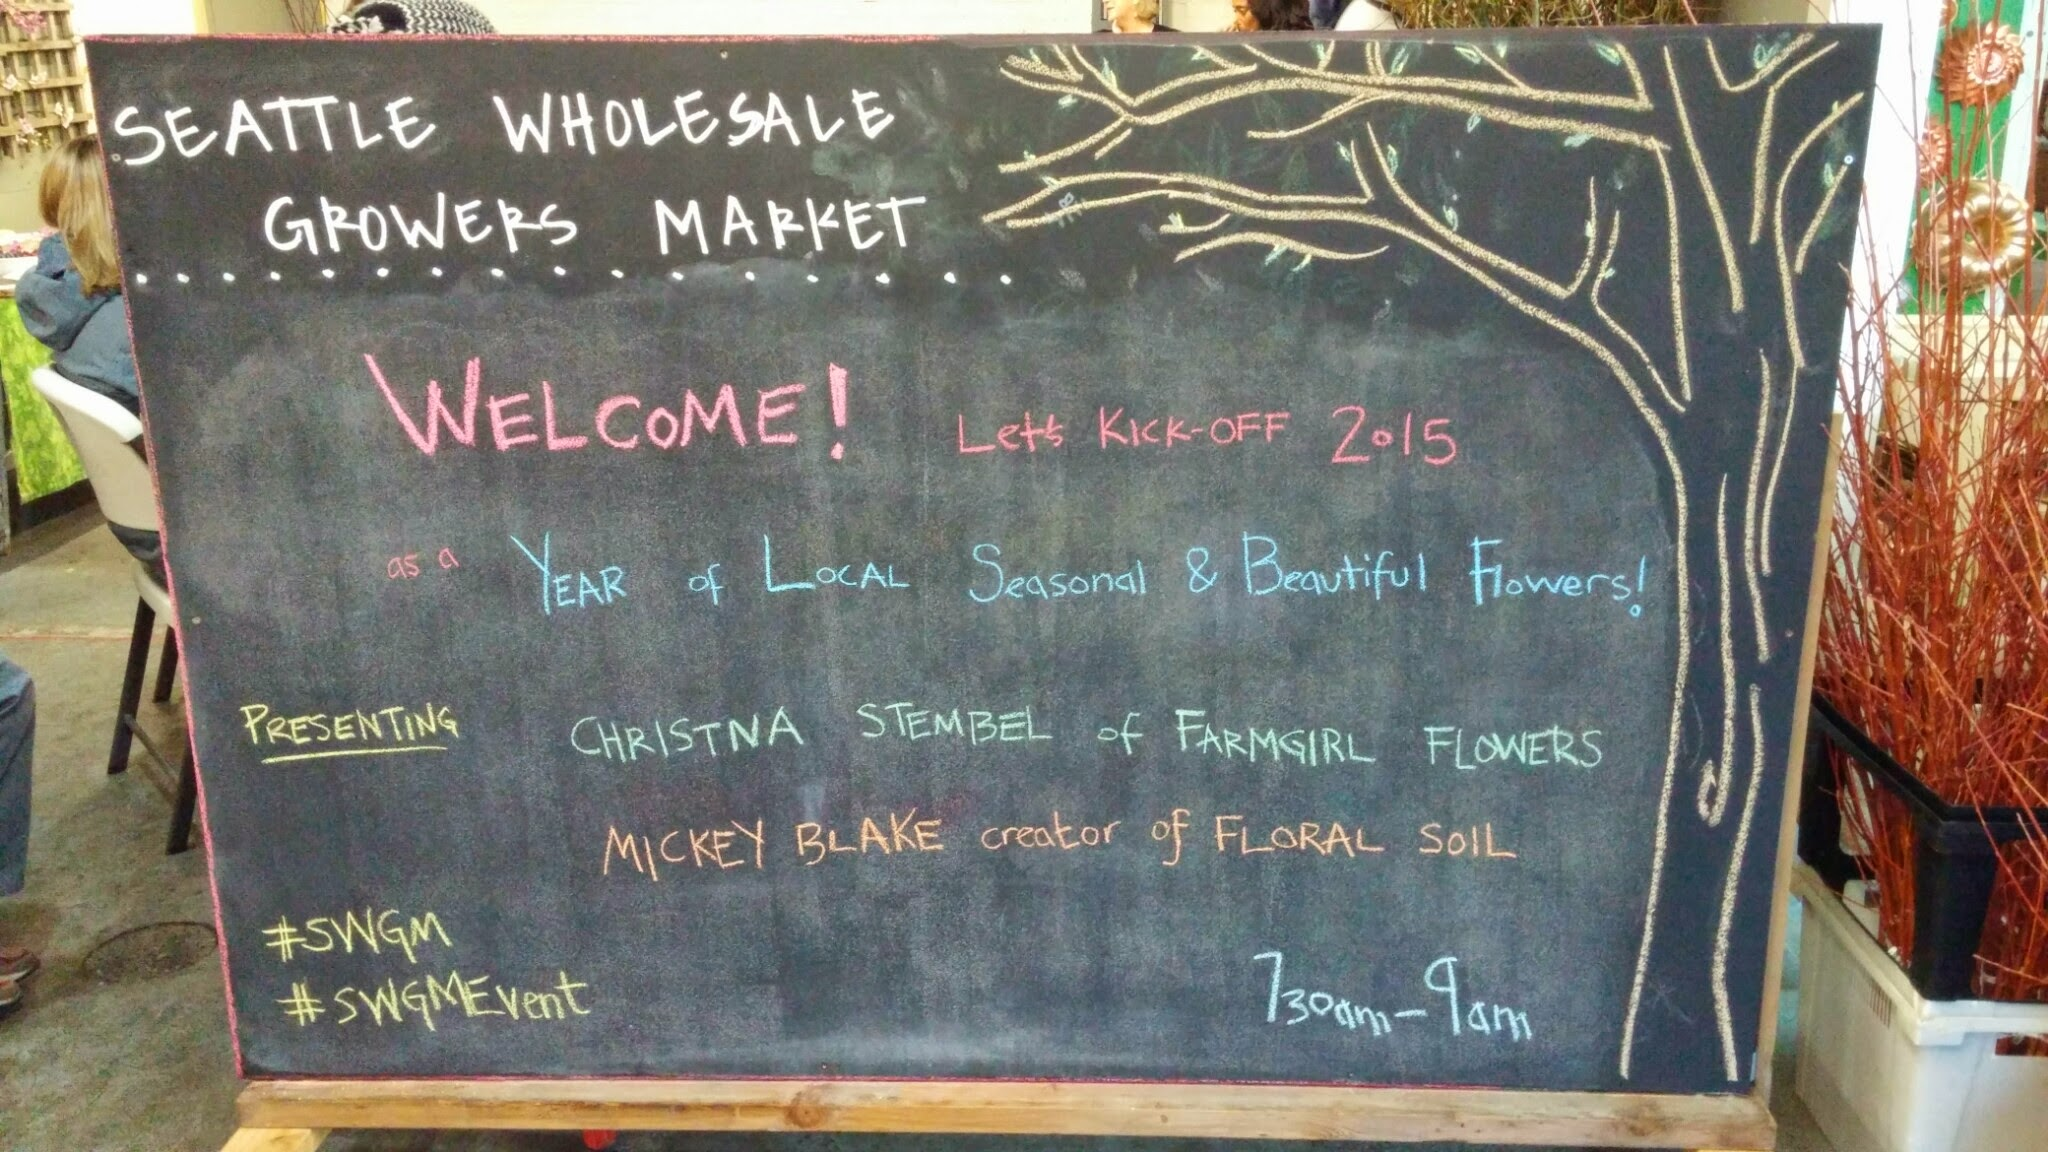 January at  Seattle Wholesale Growers Market